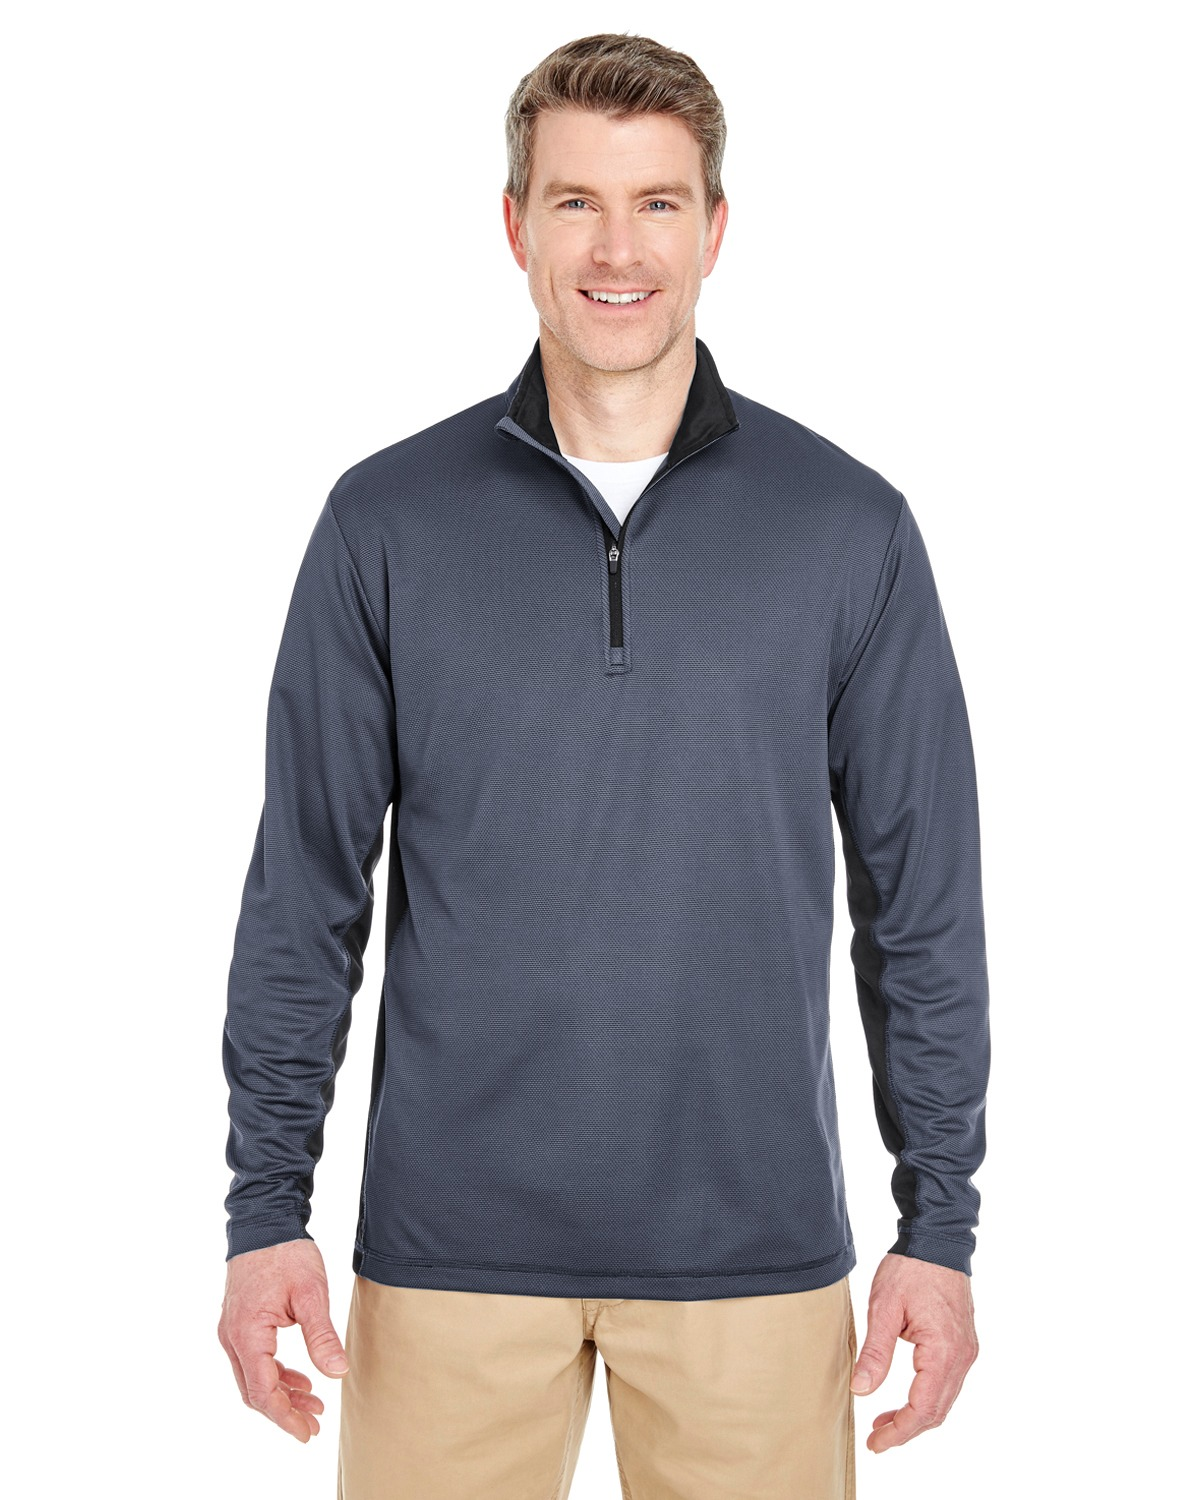 UltraClub 8237 Adult 2-Tone Keyhole Mesh 1/4Zip Pullover at GotApparel